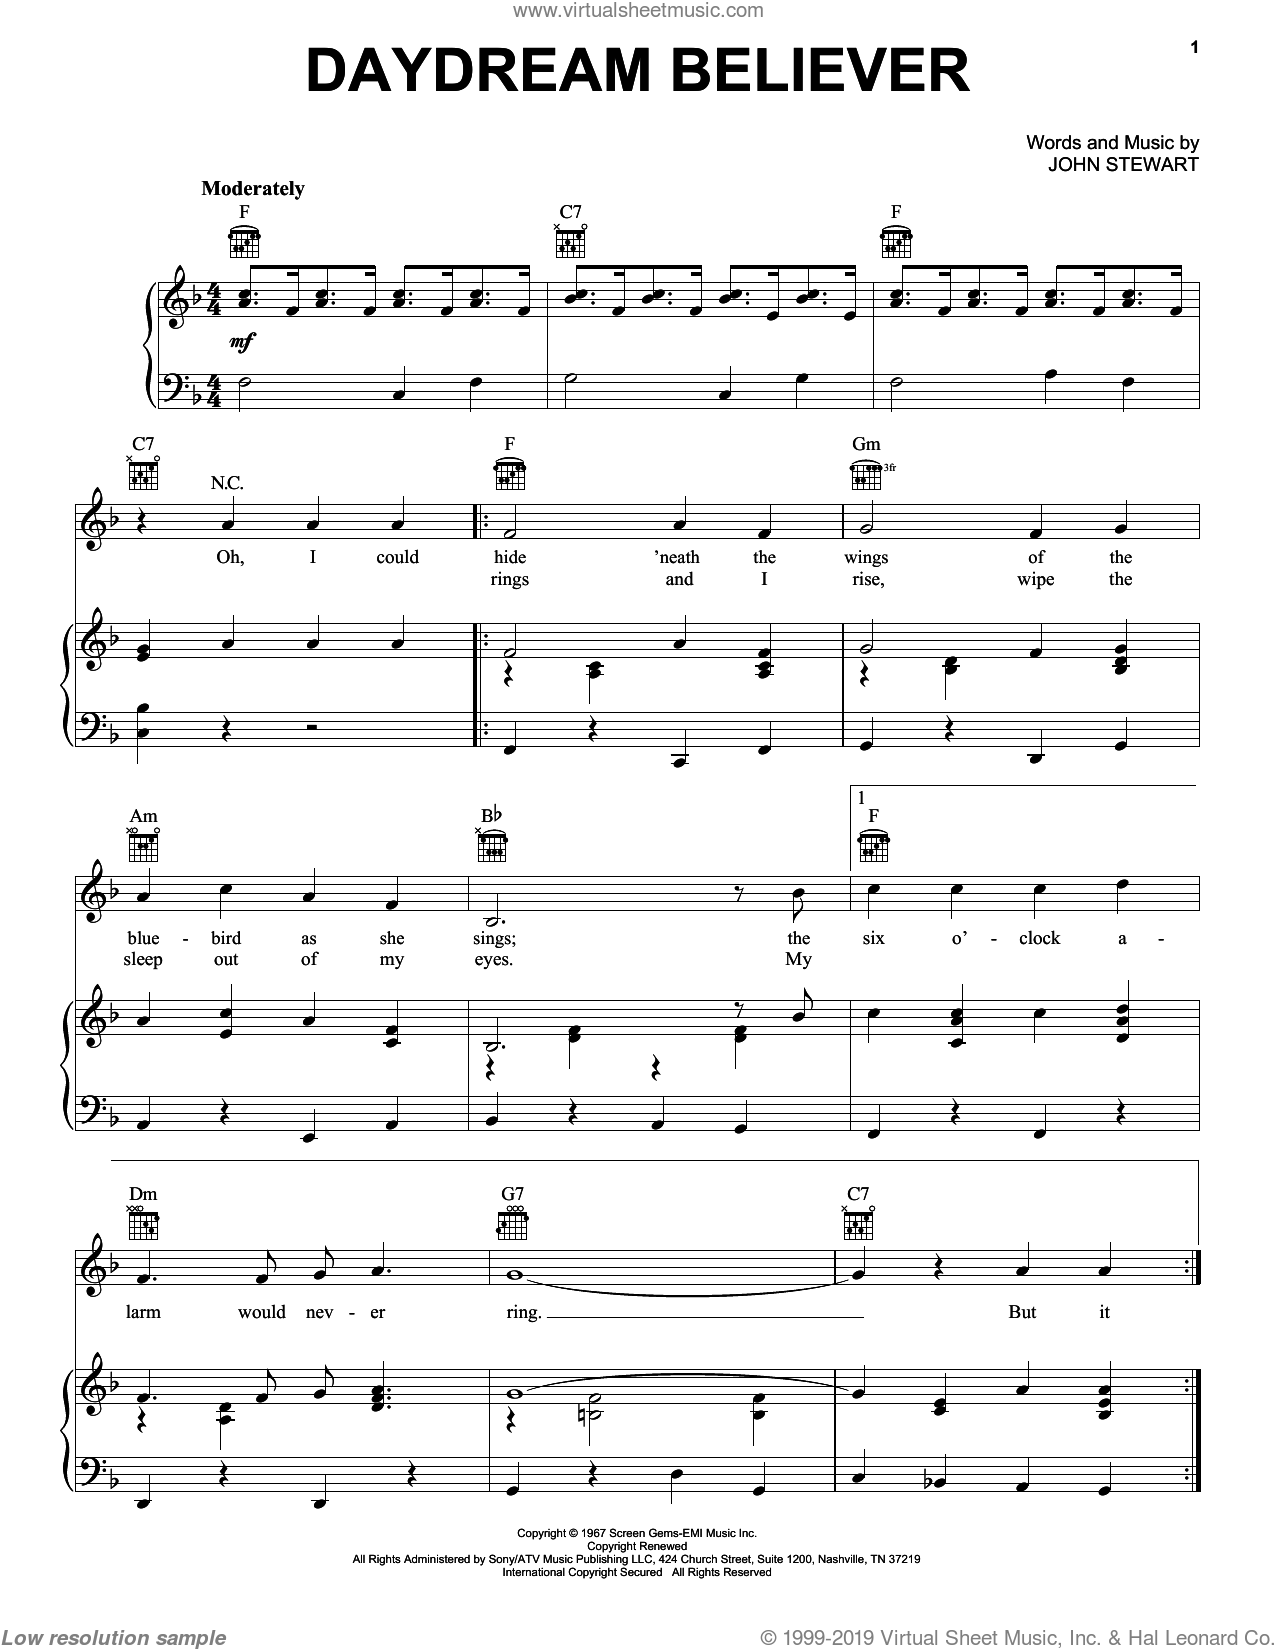 Daydream Believer sheet music for voice, piano or guitar by John Stewart